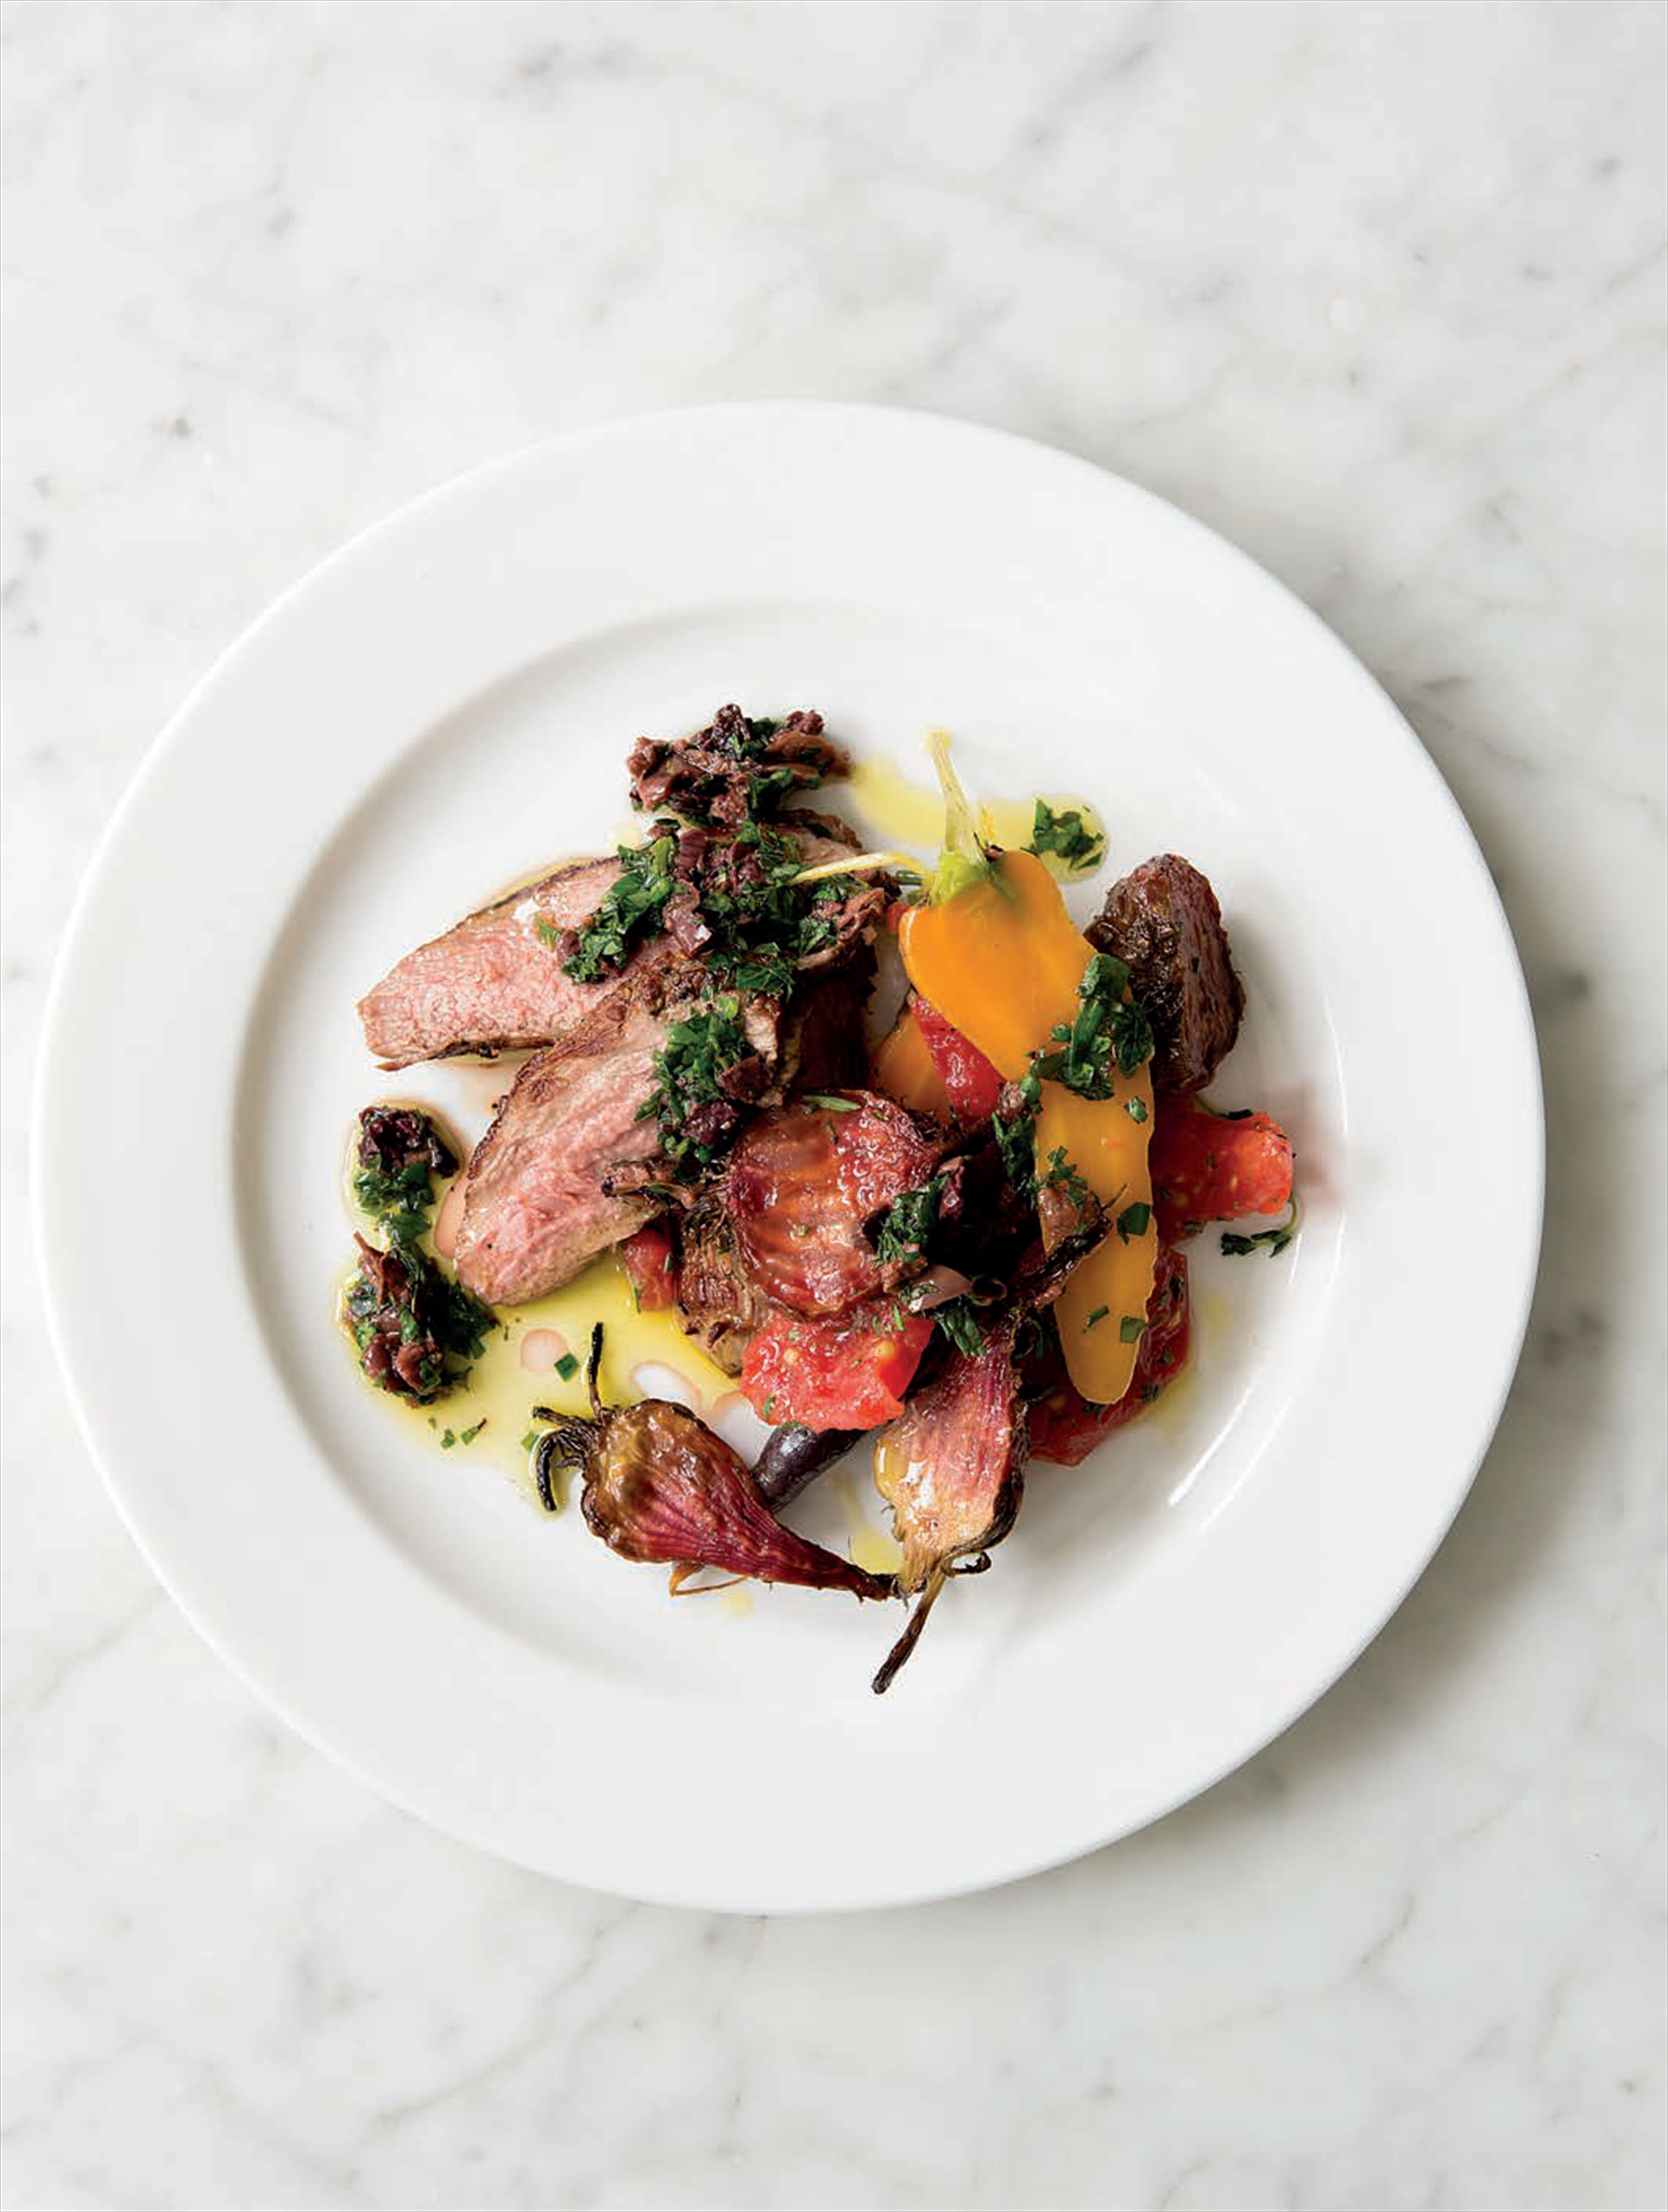 Butterflied lamb with roasted beetroots and carrots